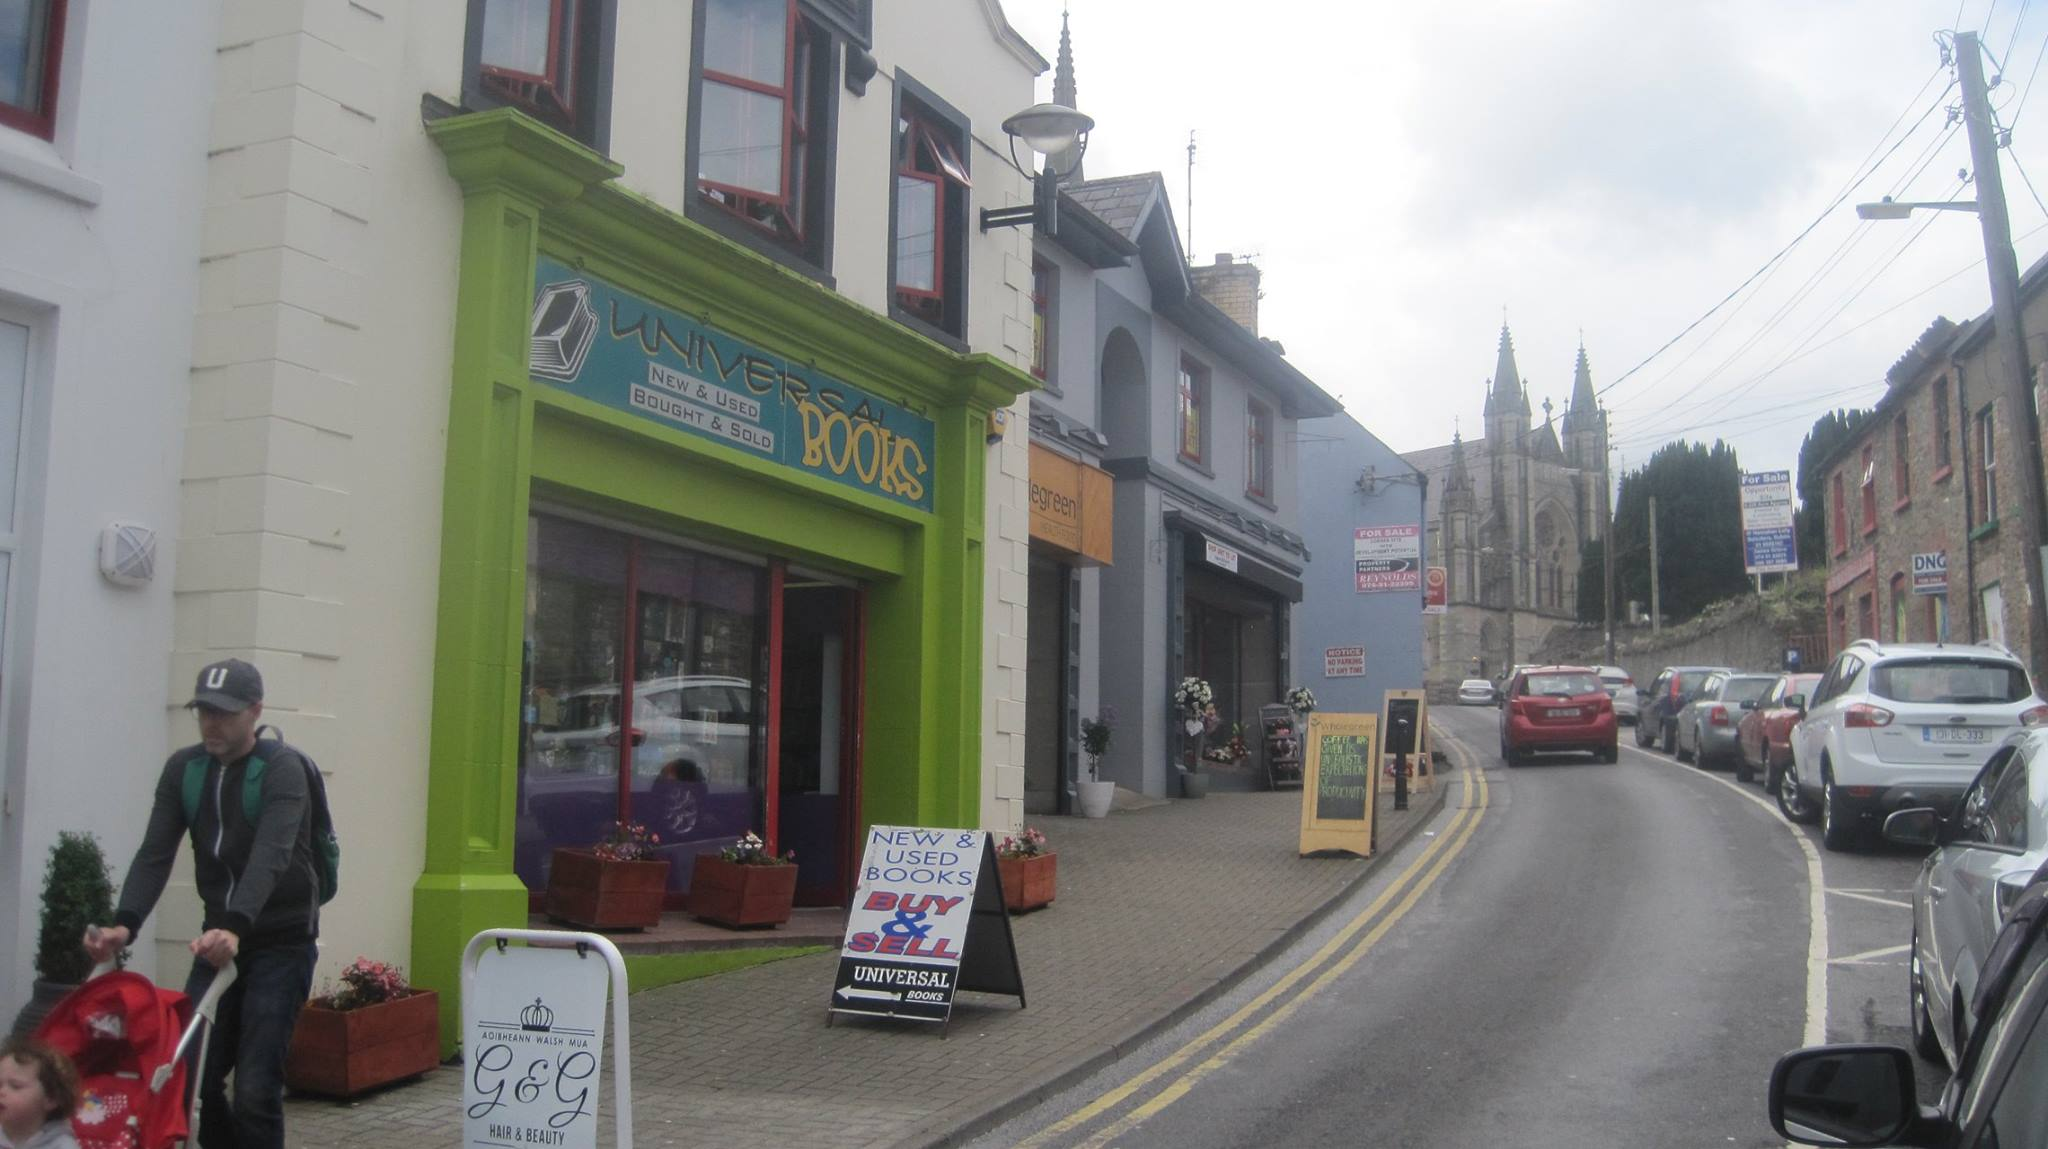 A number of new shops have opened up in Church Lane in Letterkenny's Cathedral Quarter